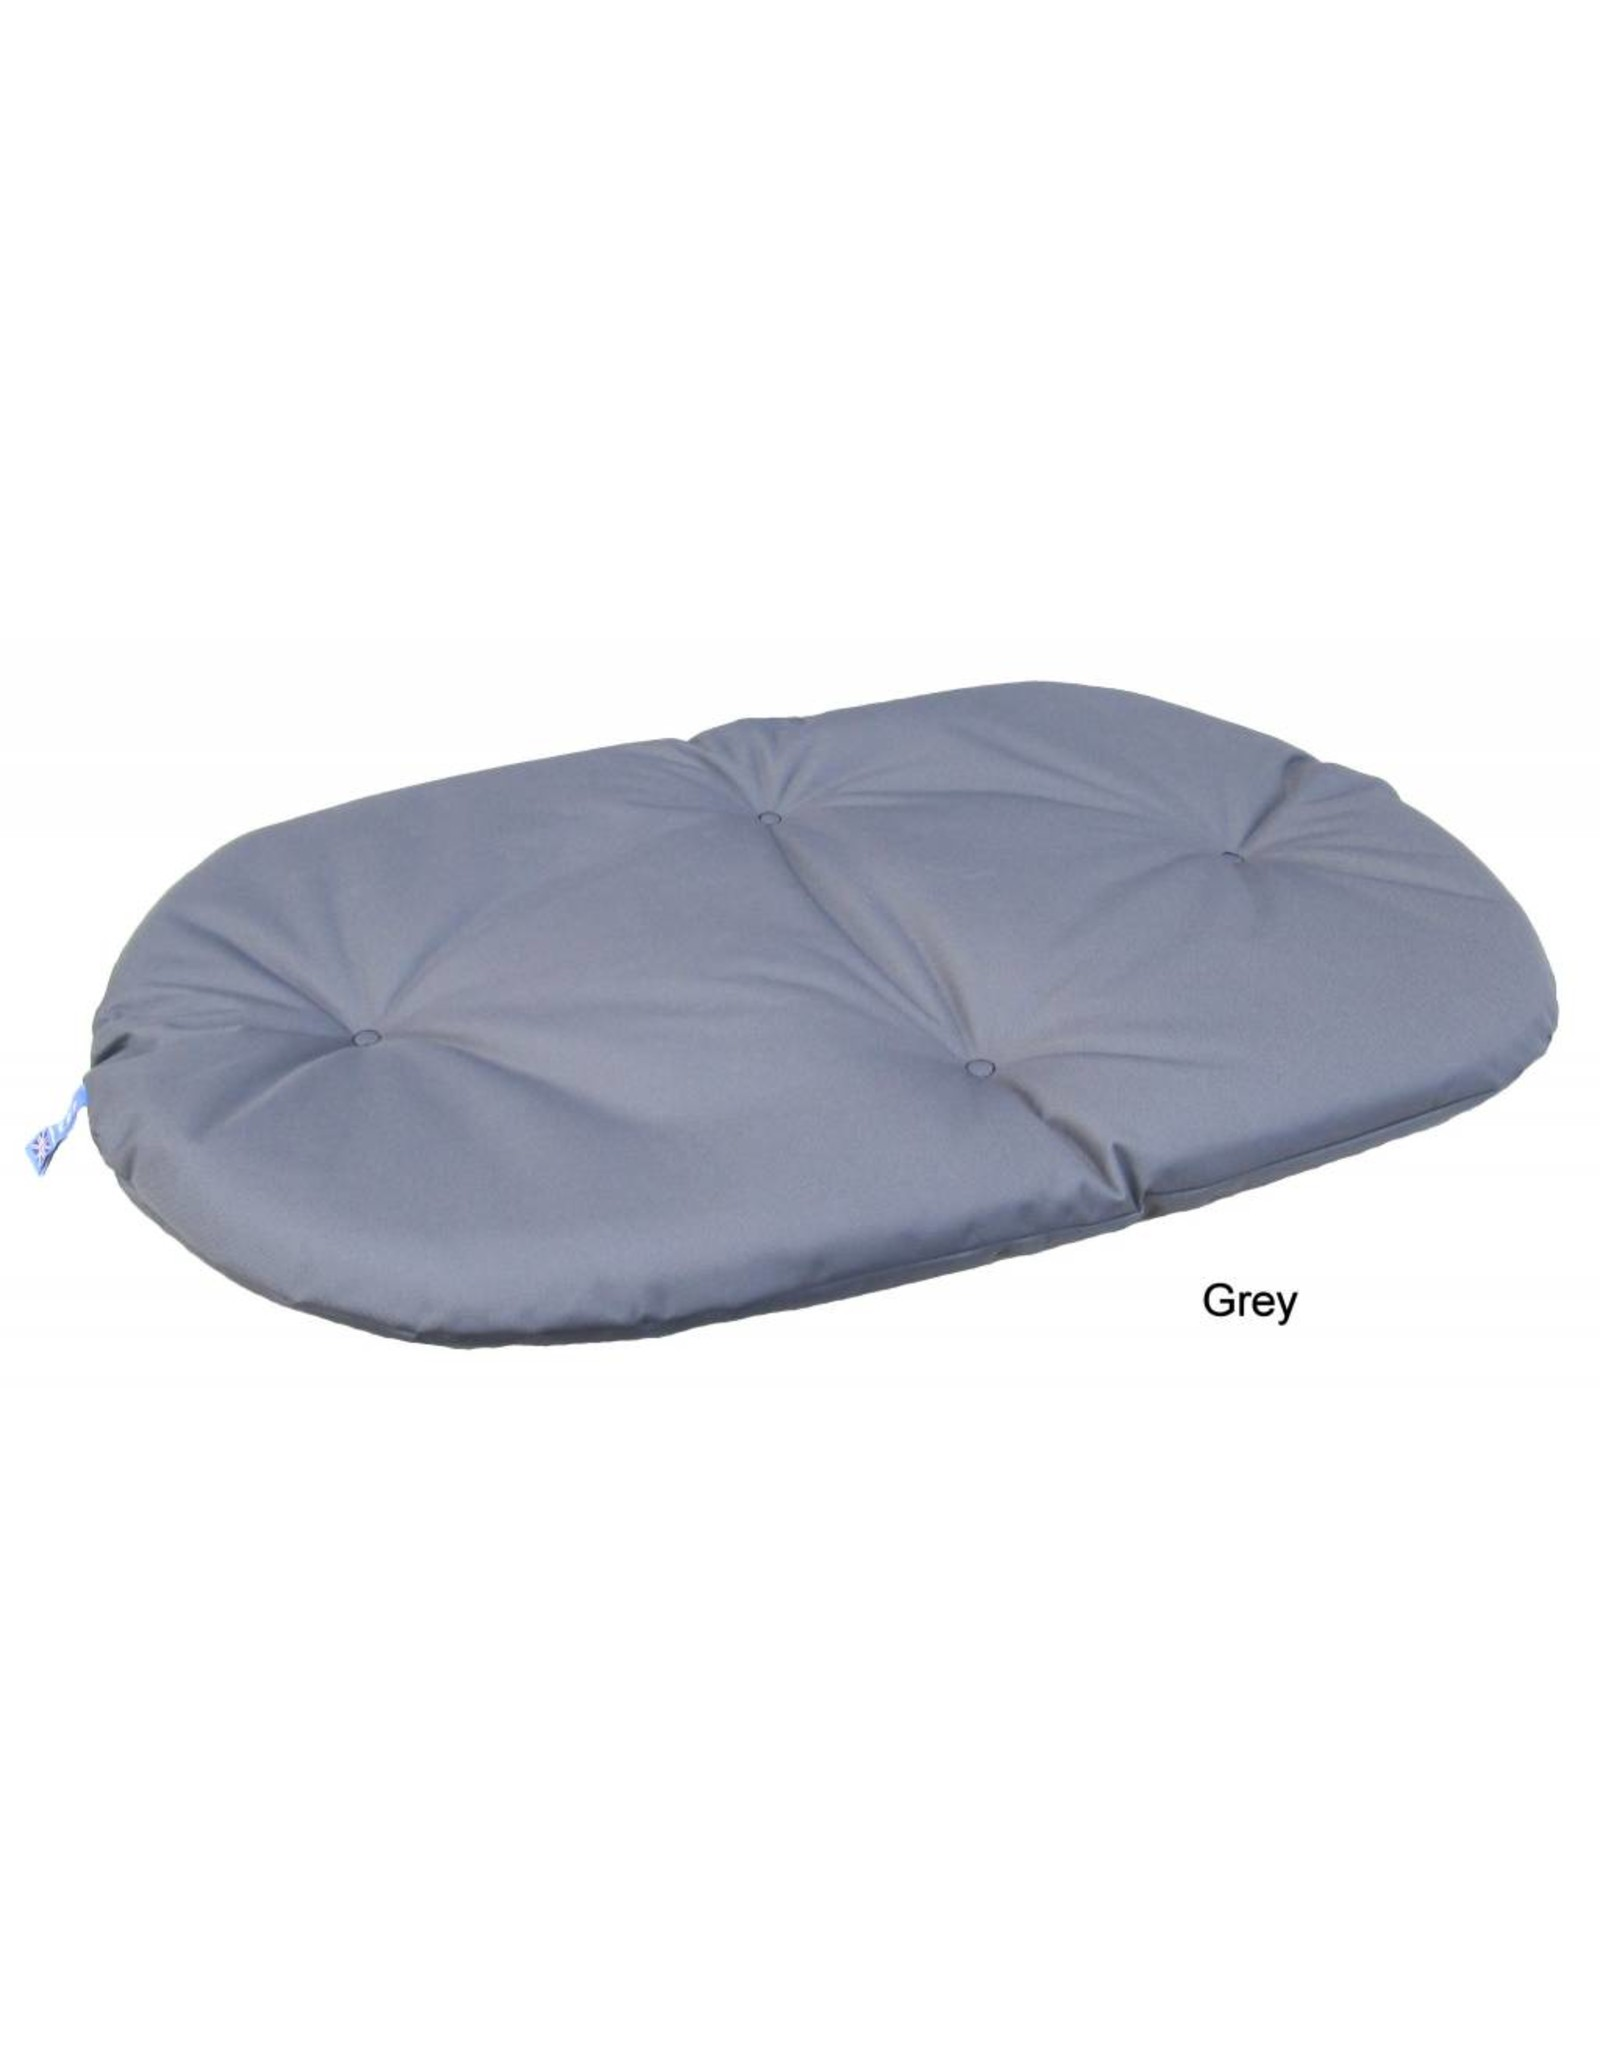 Pets & Leisure Country Dog Heavy Duty Oval Waterproof Cushion Pad in Grey